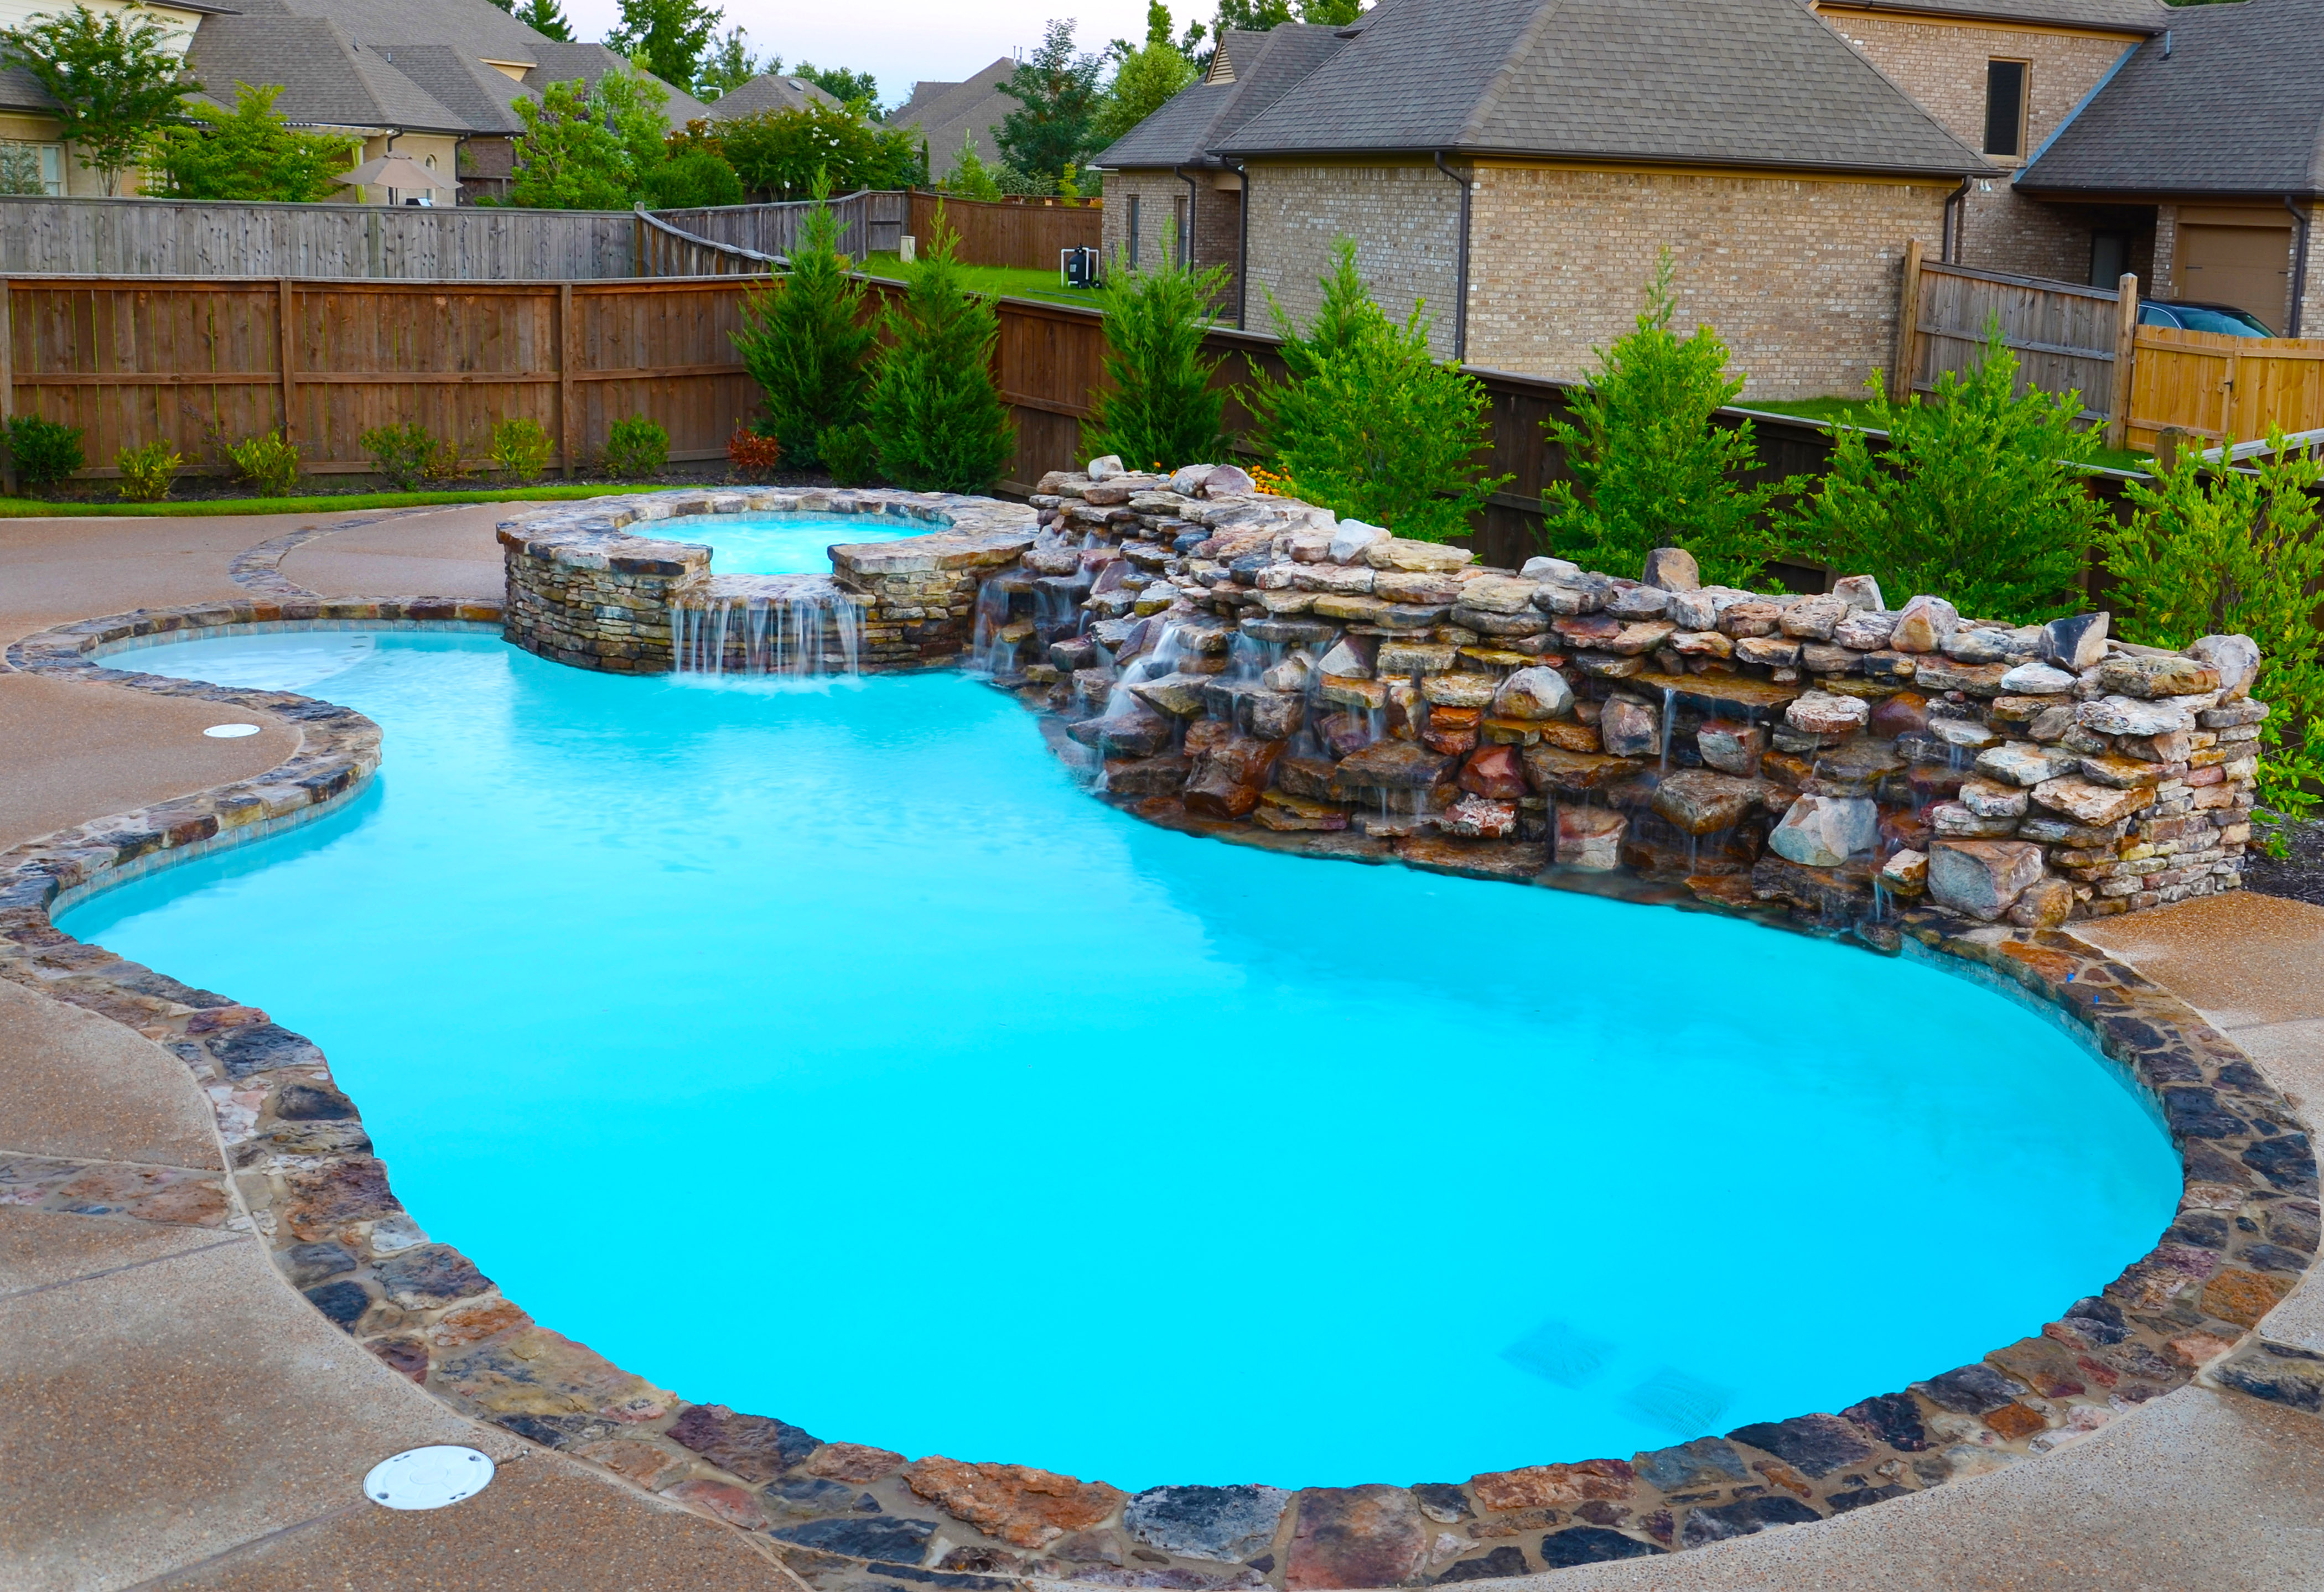 Pool and Spa Show – Metroplex Expo Center | Youngstown Expo & Event ...